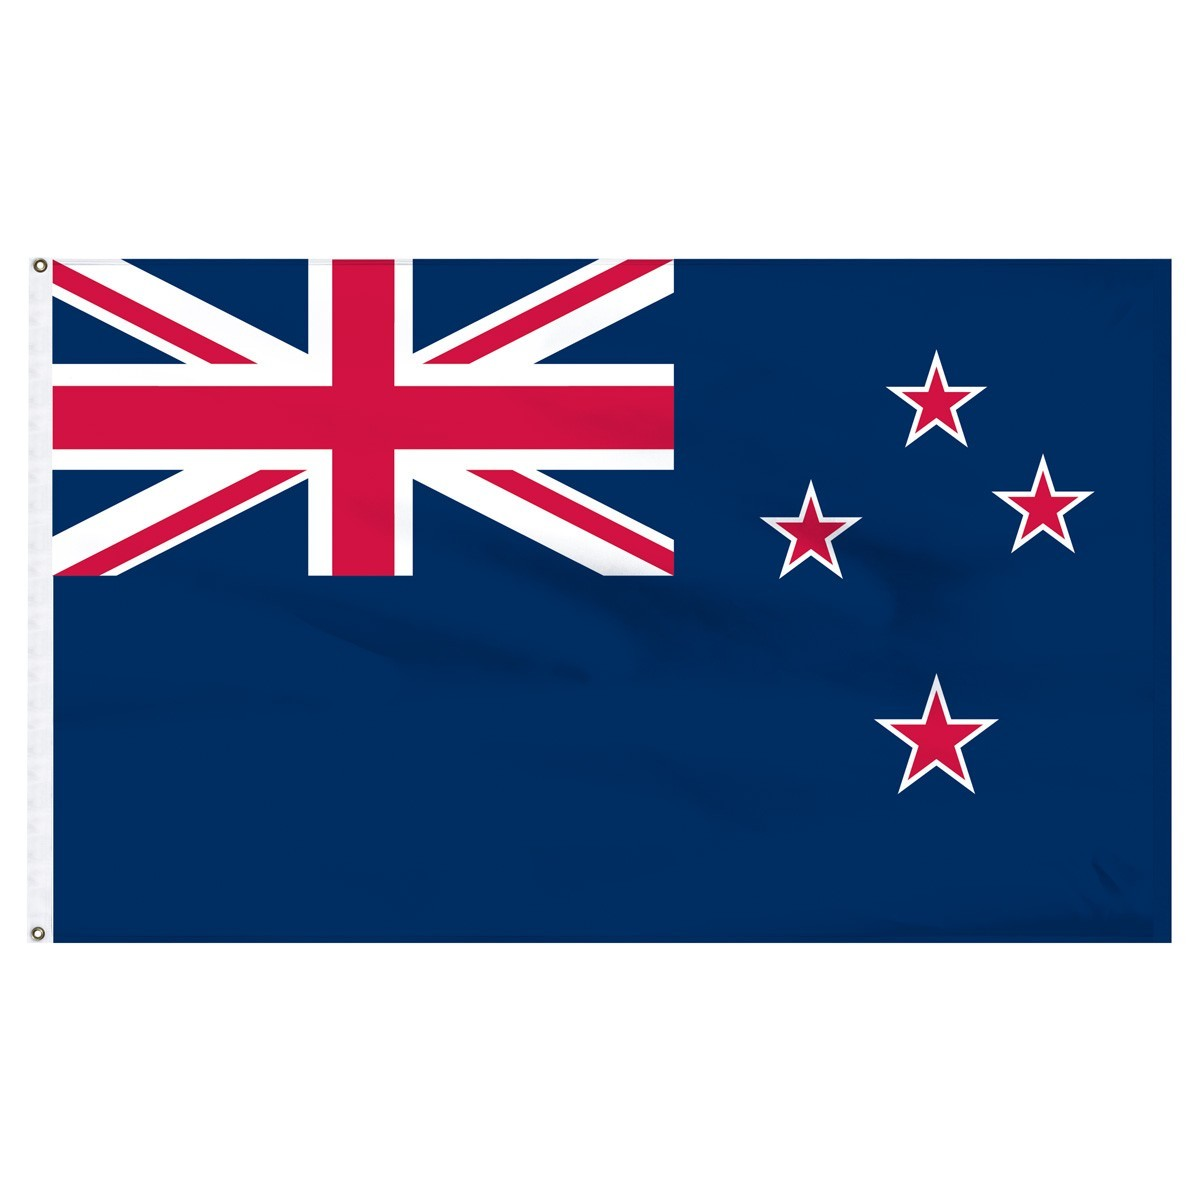 New Zealand 3' x 5' Outdoor Nylon Flag